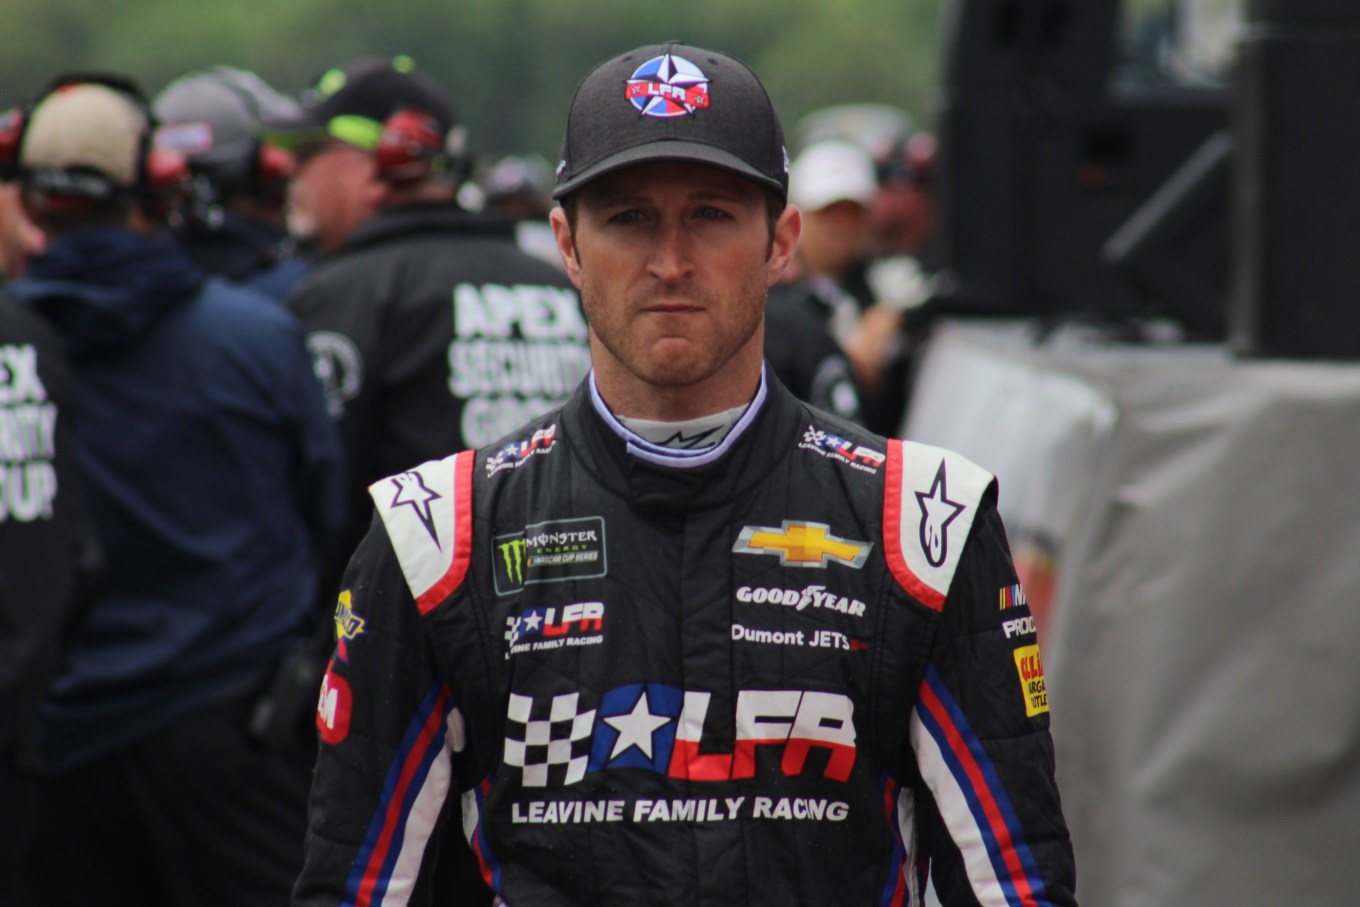 Kasey Kahne walks during driver introductions for the 2018 Pocono 400. (Tyler Head | The Racing Experts)